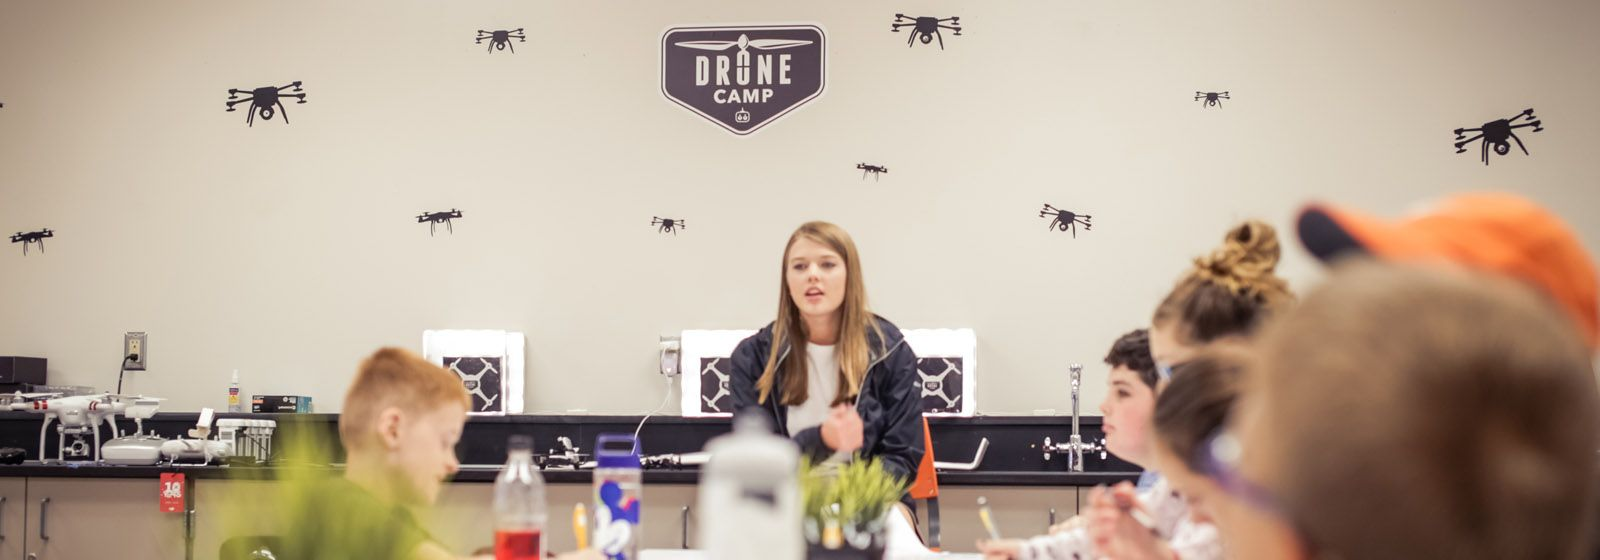 Kids get their wings in drone technology